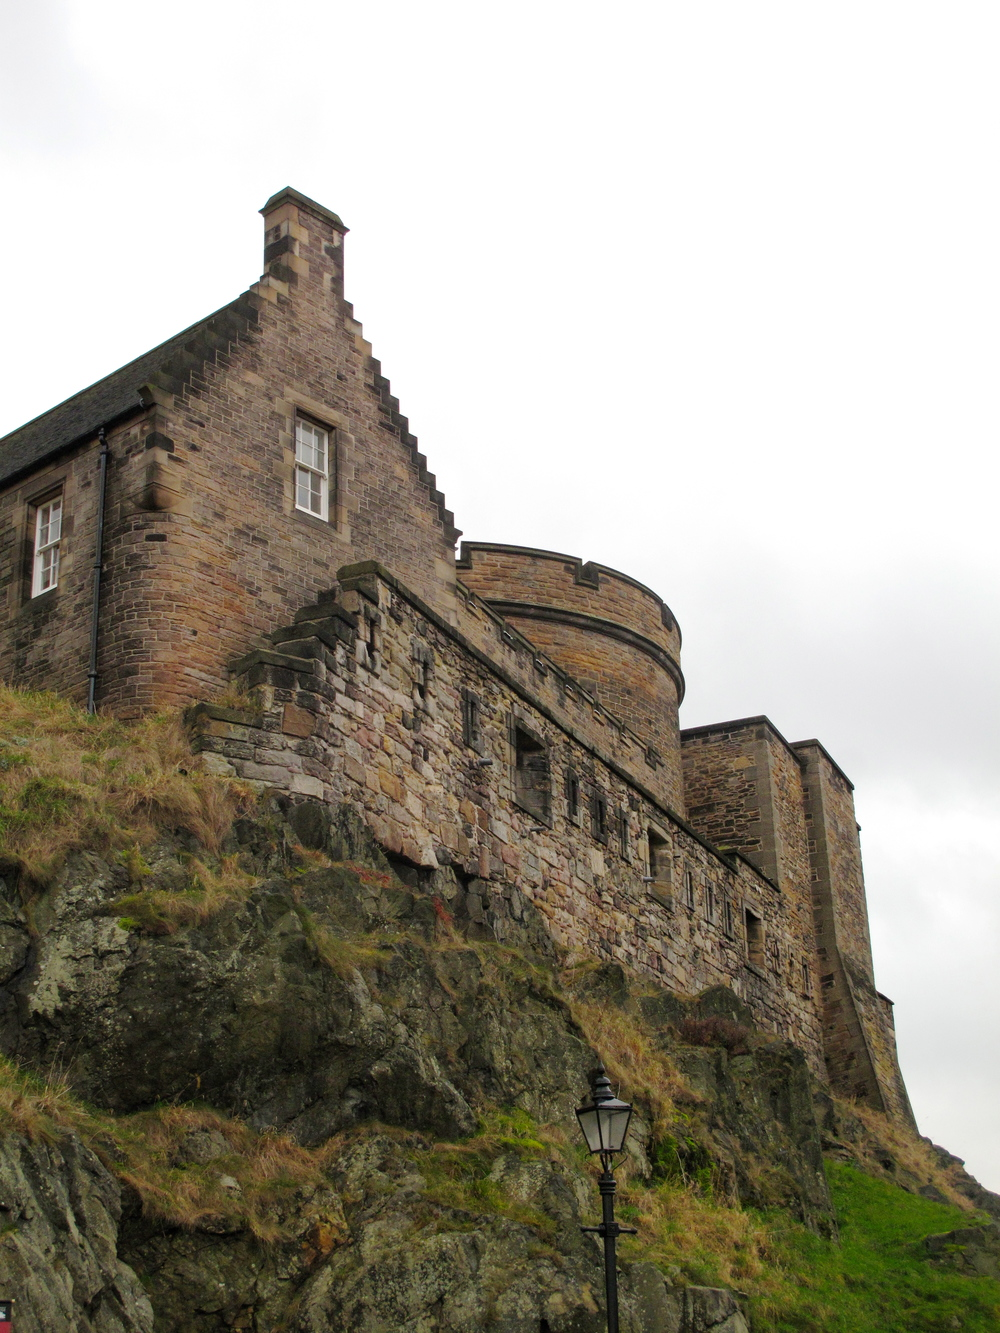 Stone buildings inside the walls of Edinburgh Castle.